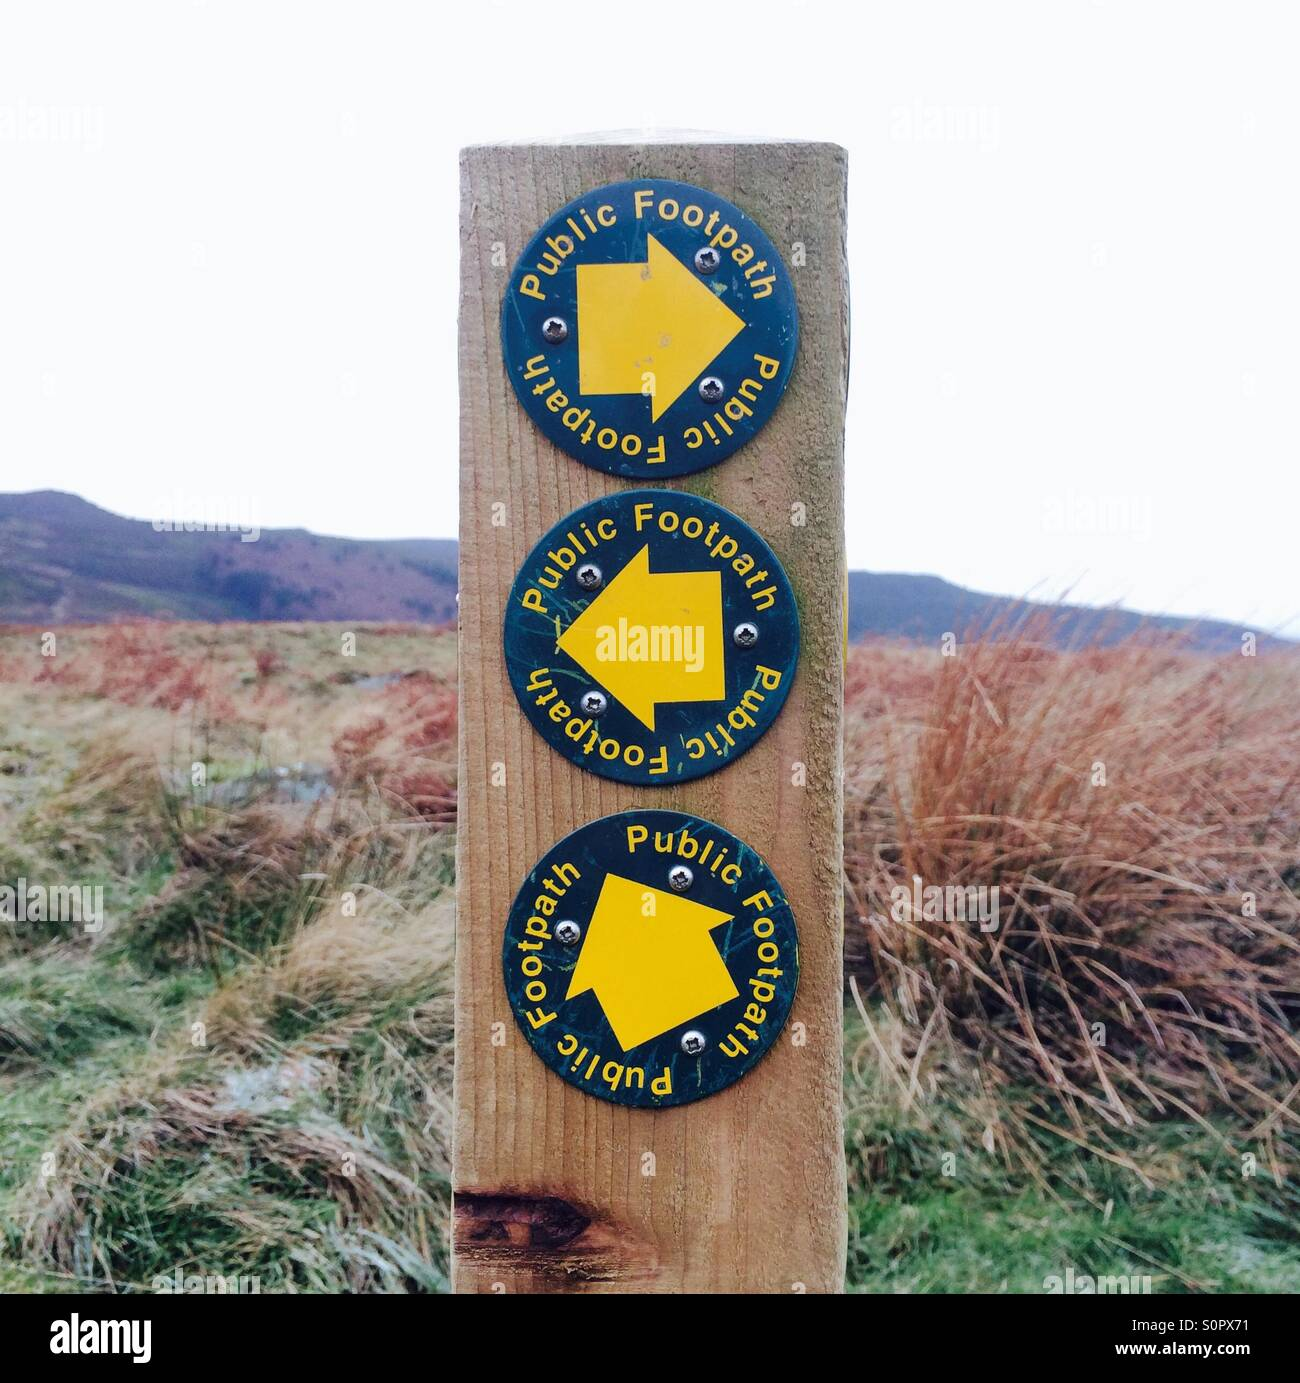 A sign for the various public footpaths across moorland in Northumberland, UK. - Stock Image